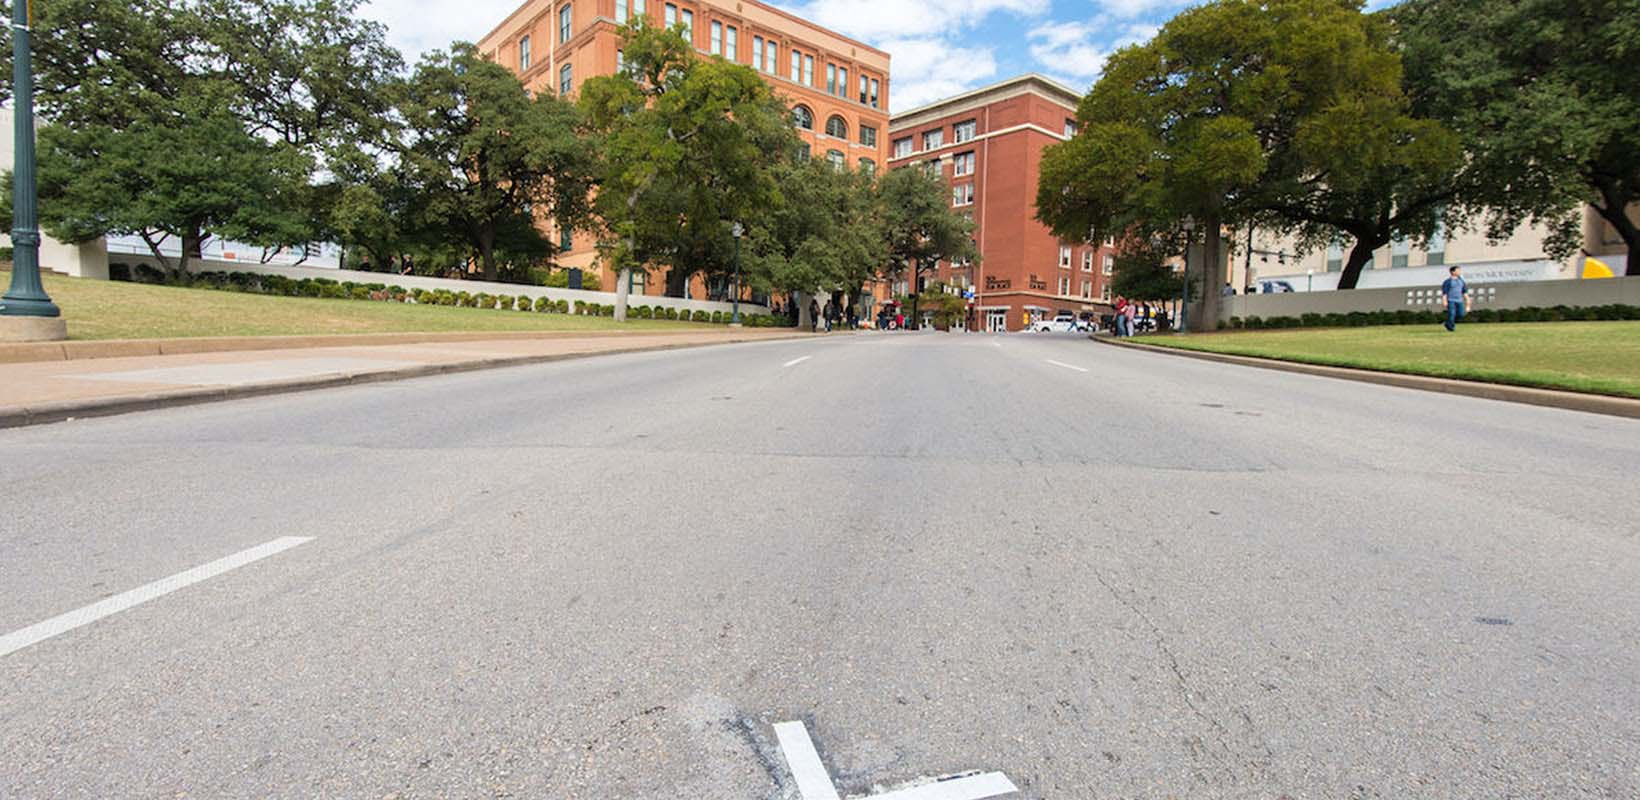 JFK Assassination Bus Tour